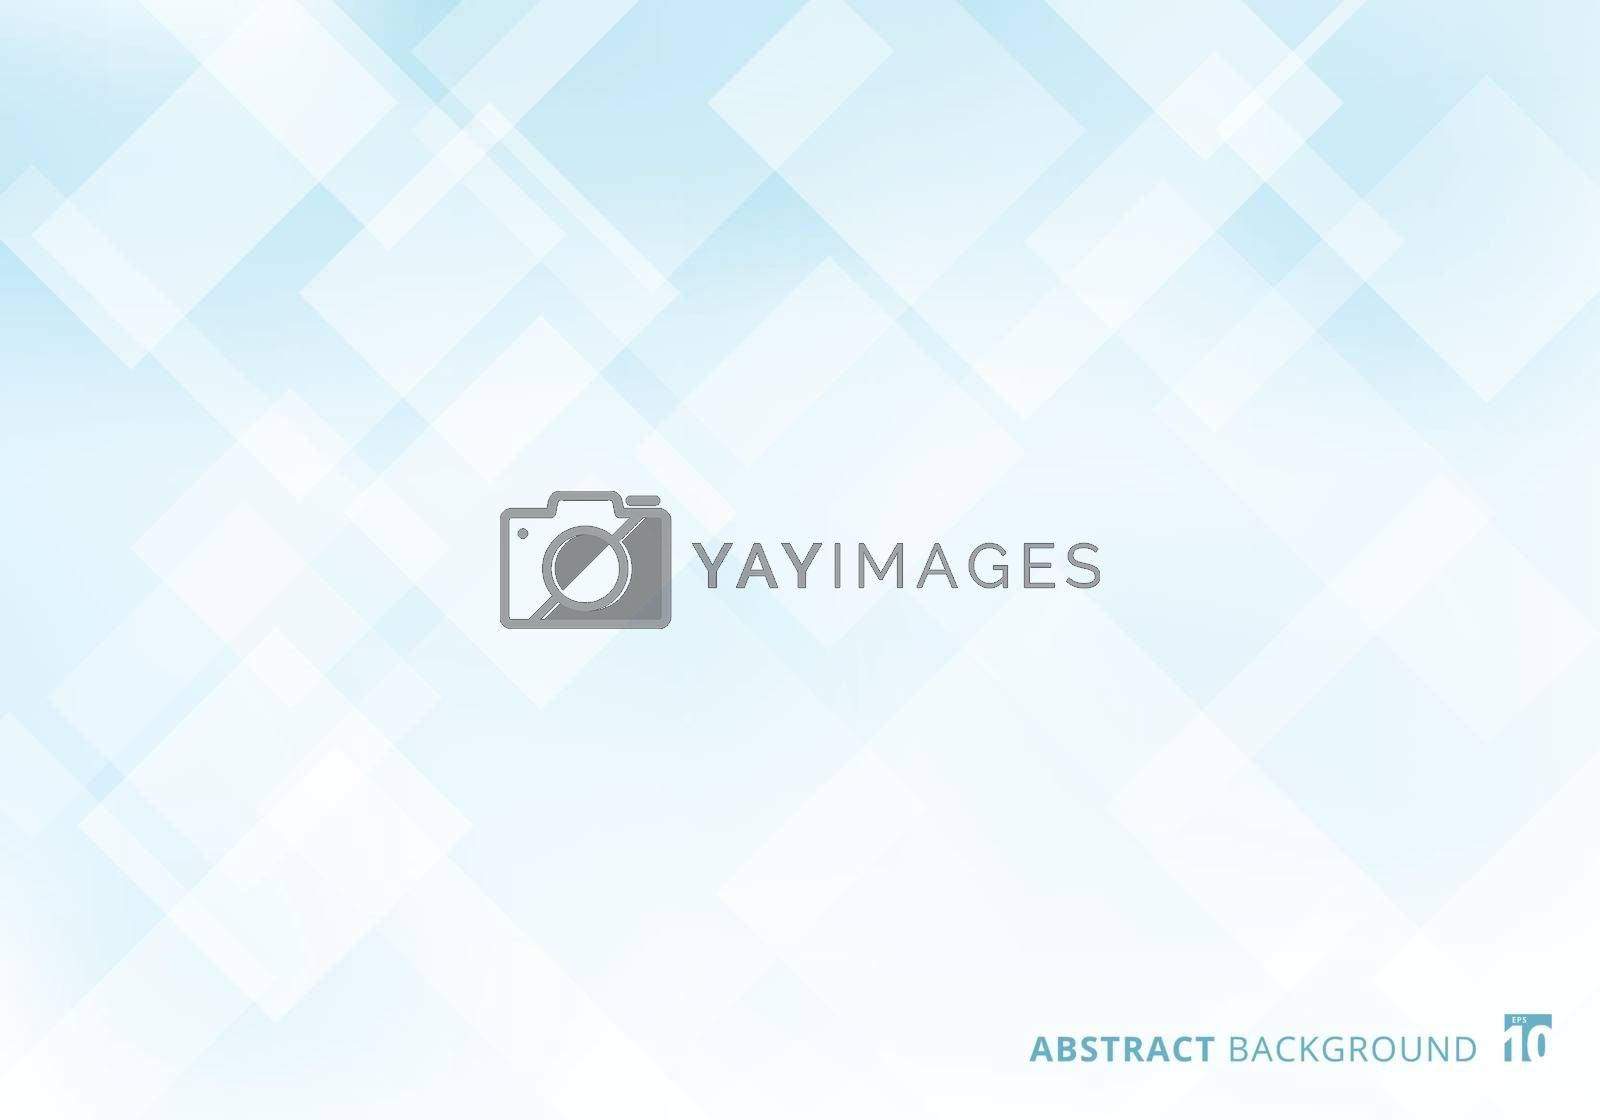 Abstract elegant squares shapes pattern overlay layer geometric white and blue gradient color background. Vector illustration